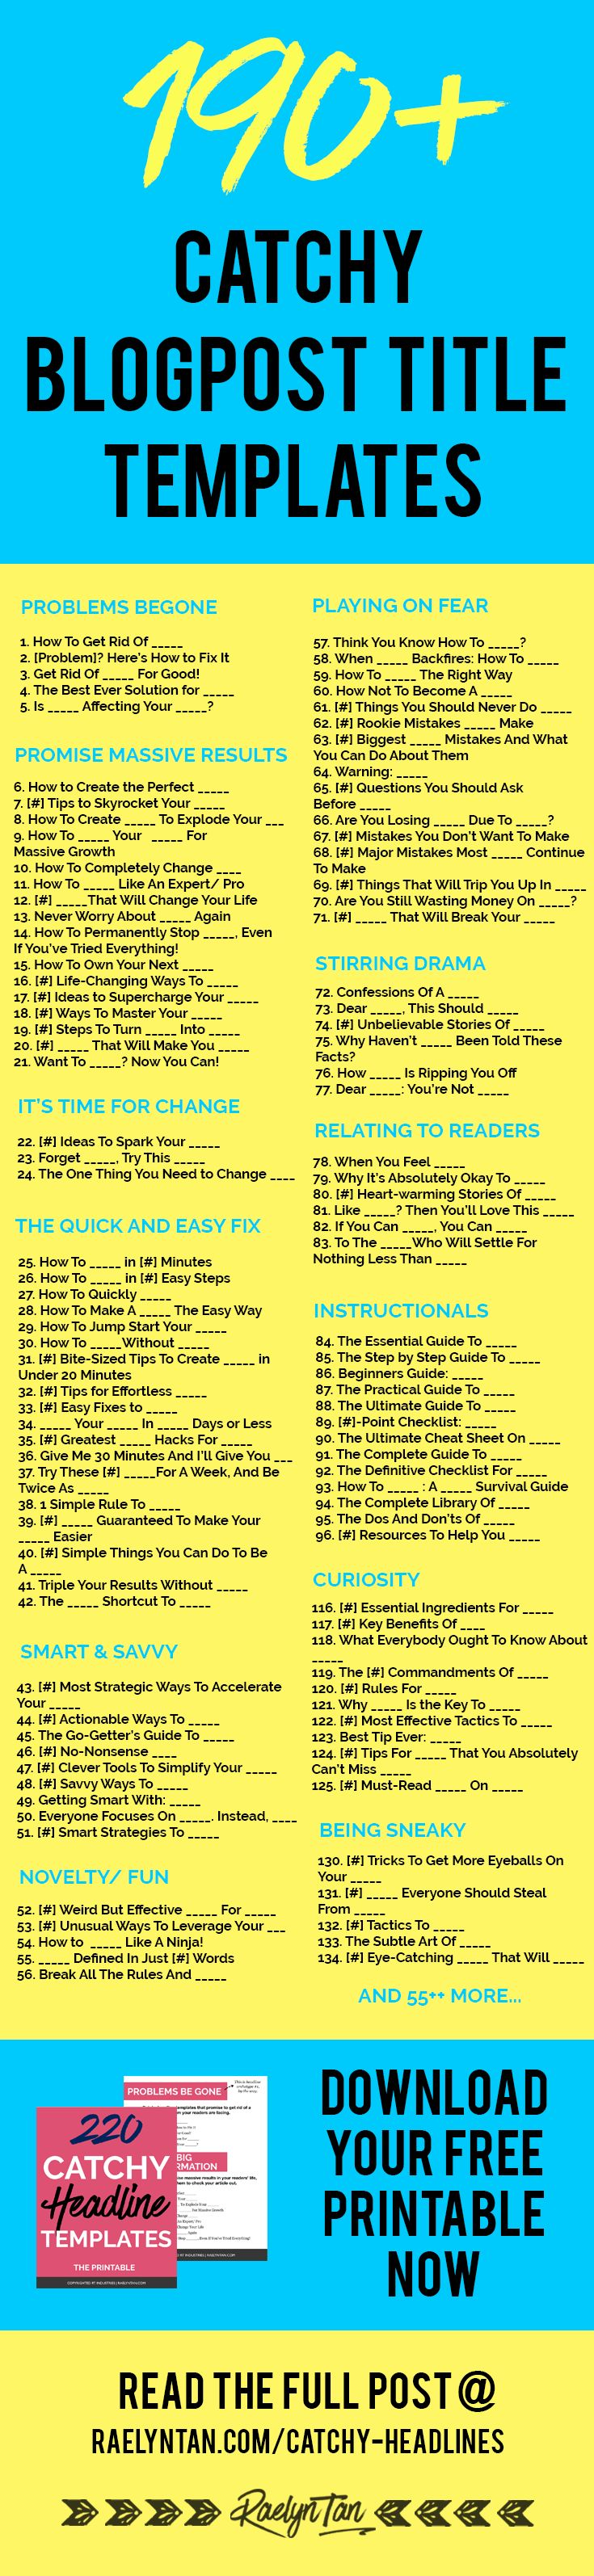 I love the idea of titles that convert being ready-to-go in a chart. Helps save some time.